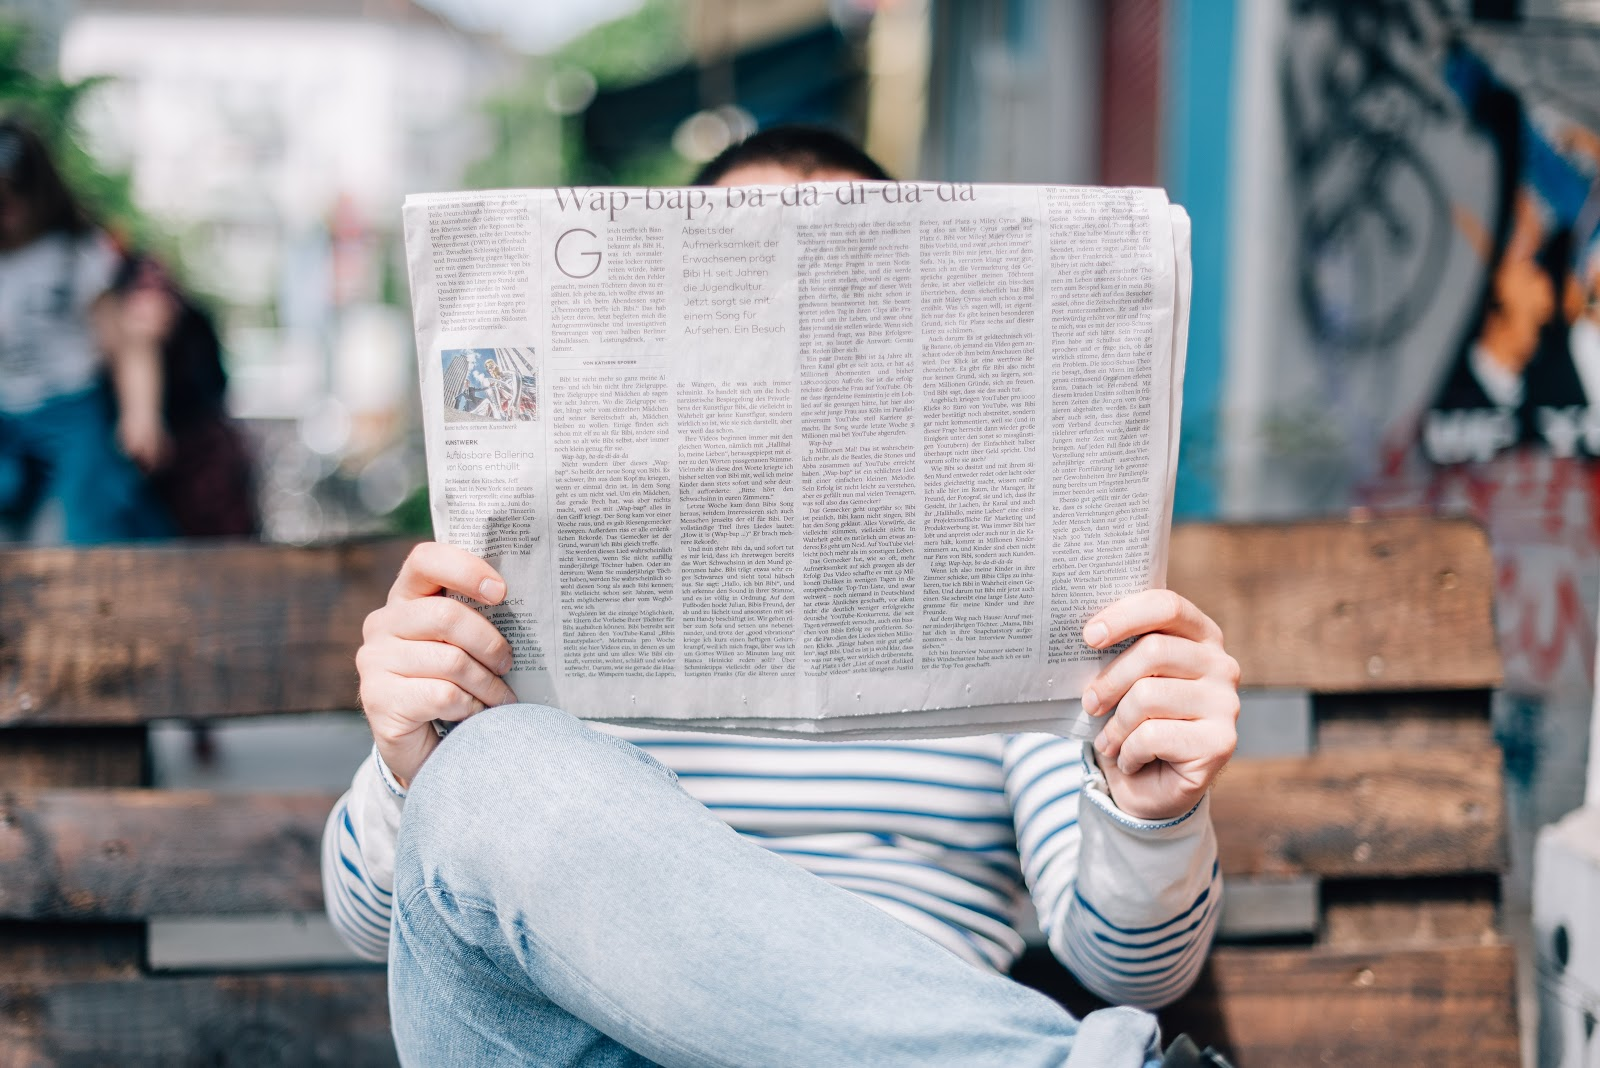 Cogoport in the News: Increased International Media Attention